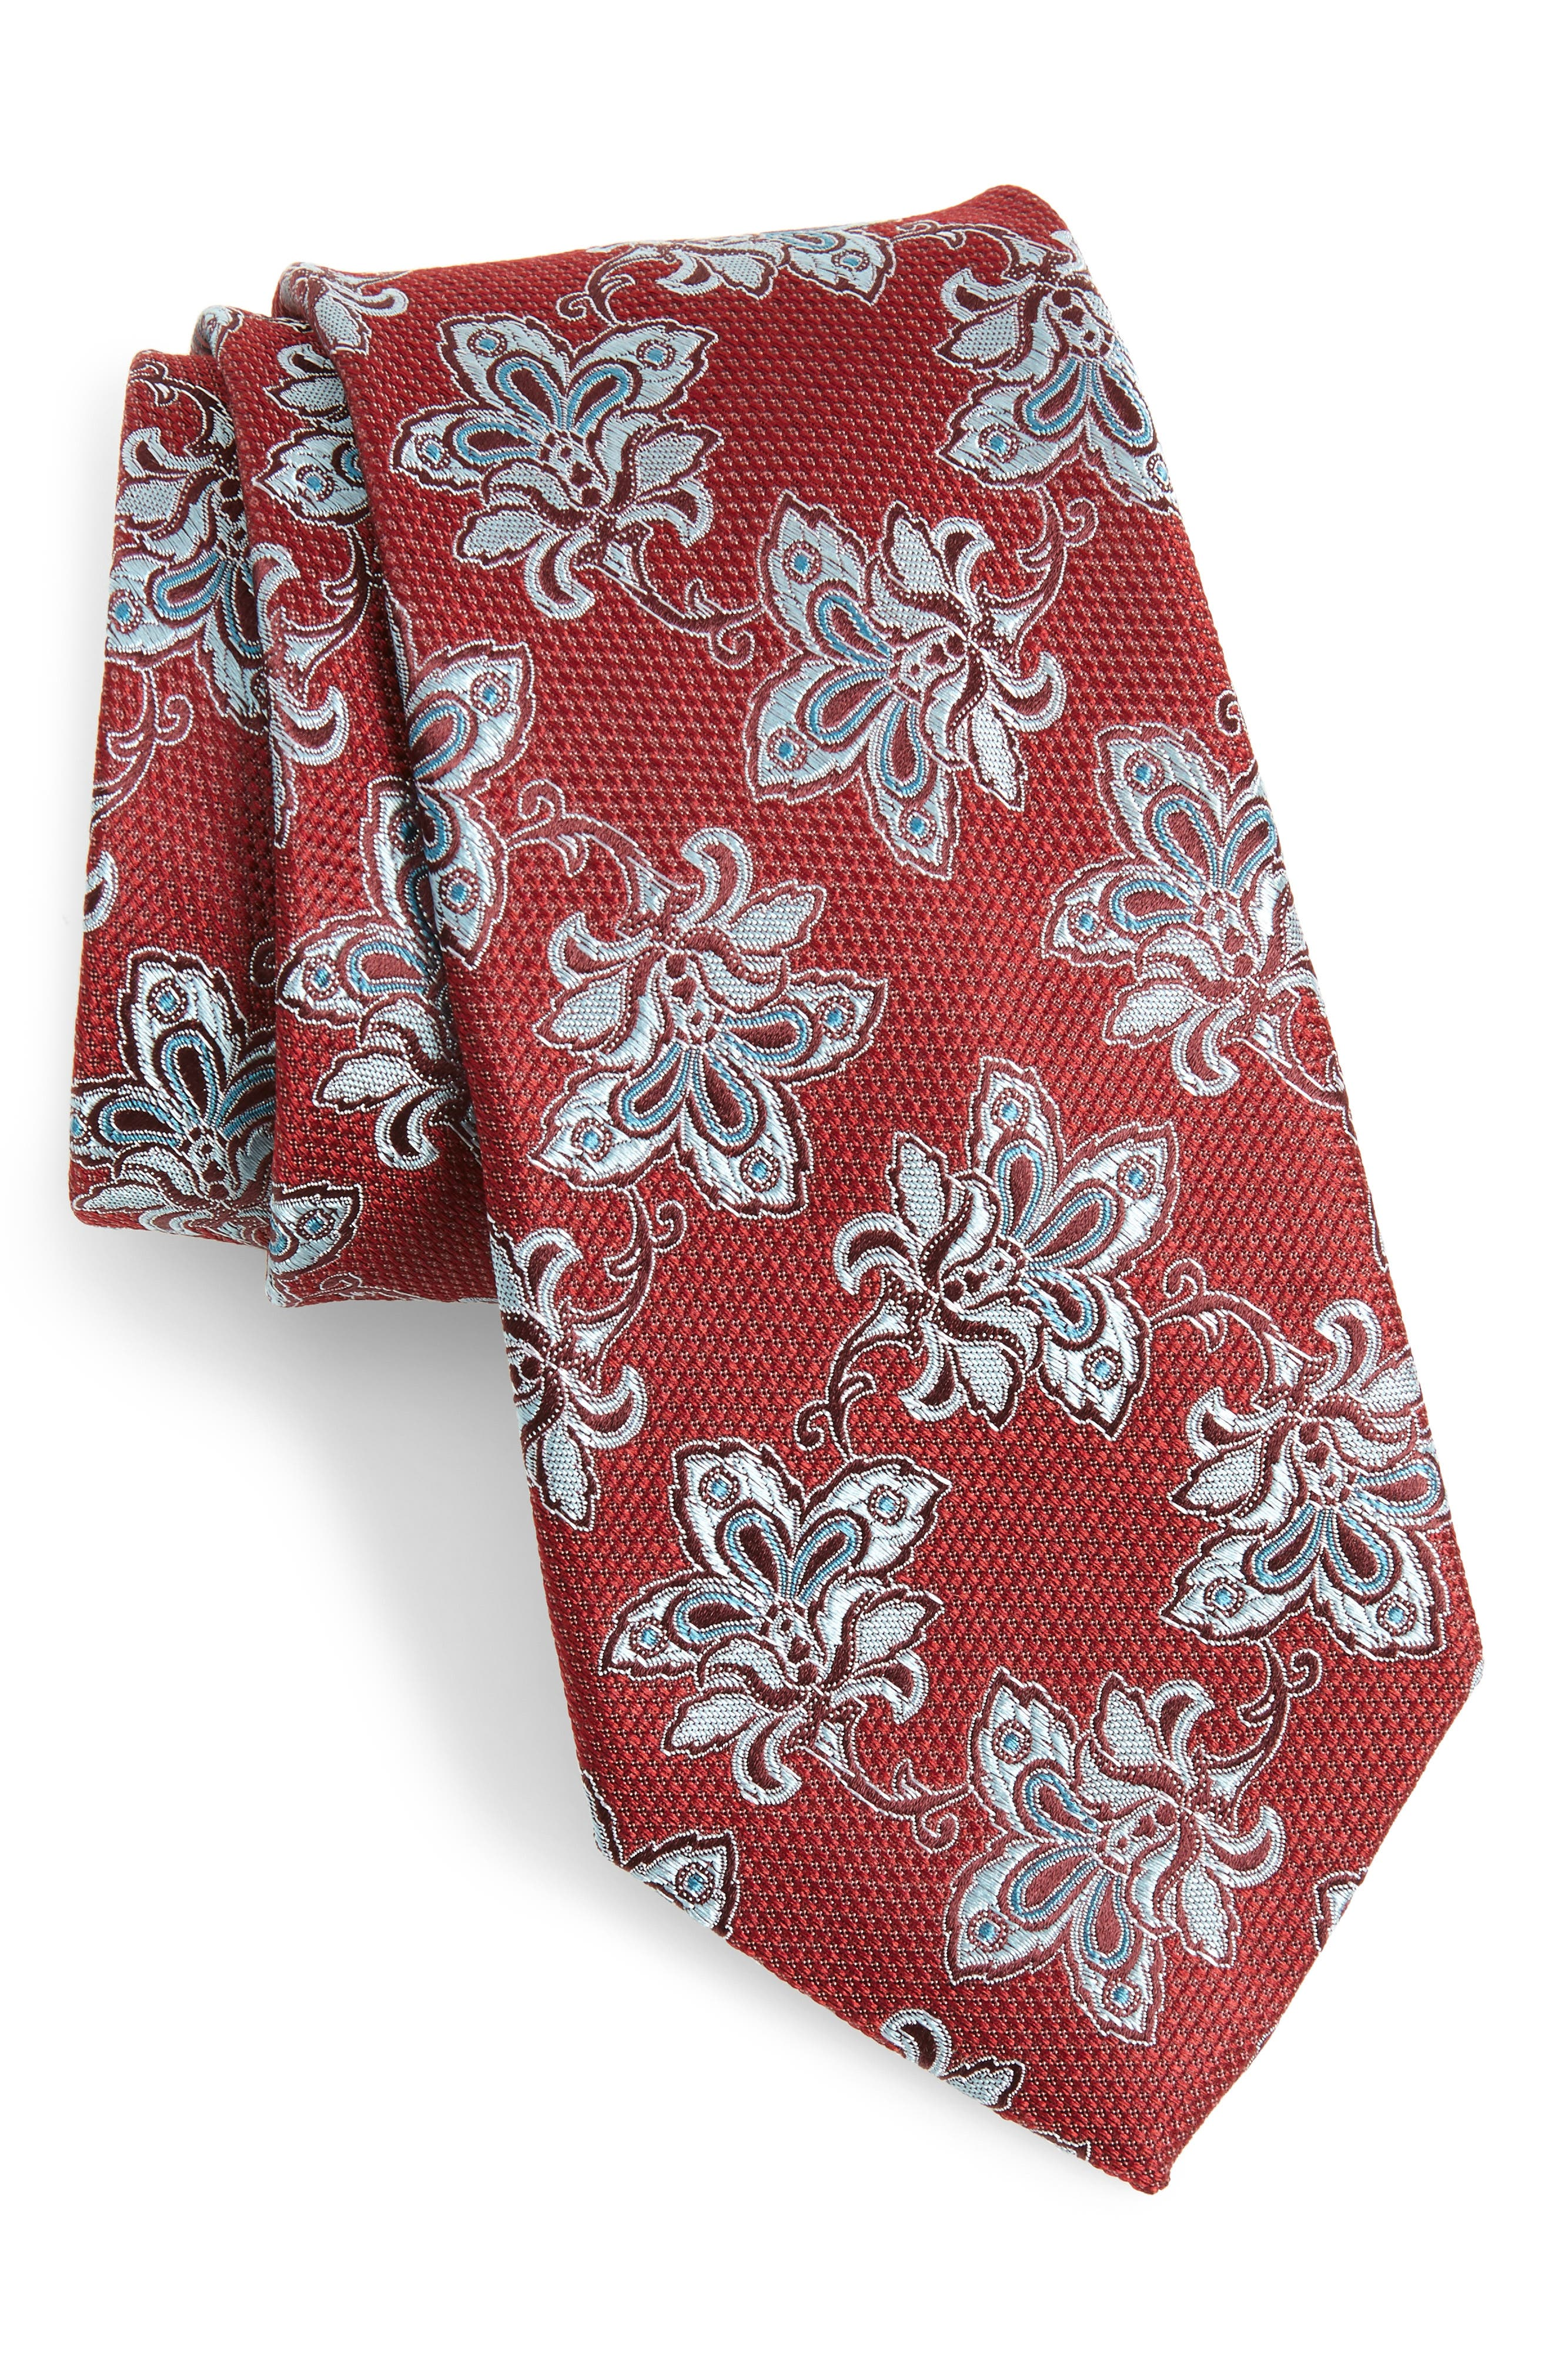 Shaw Floral Silk Tie,                         Main,                         color, Red